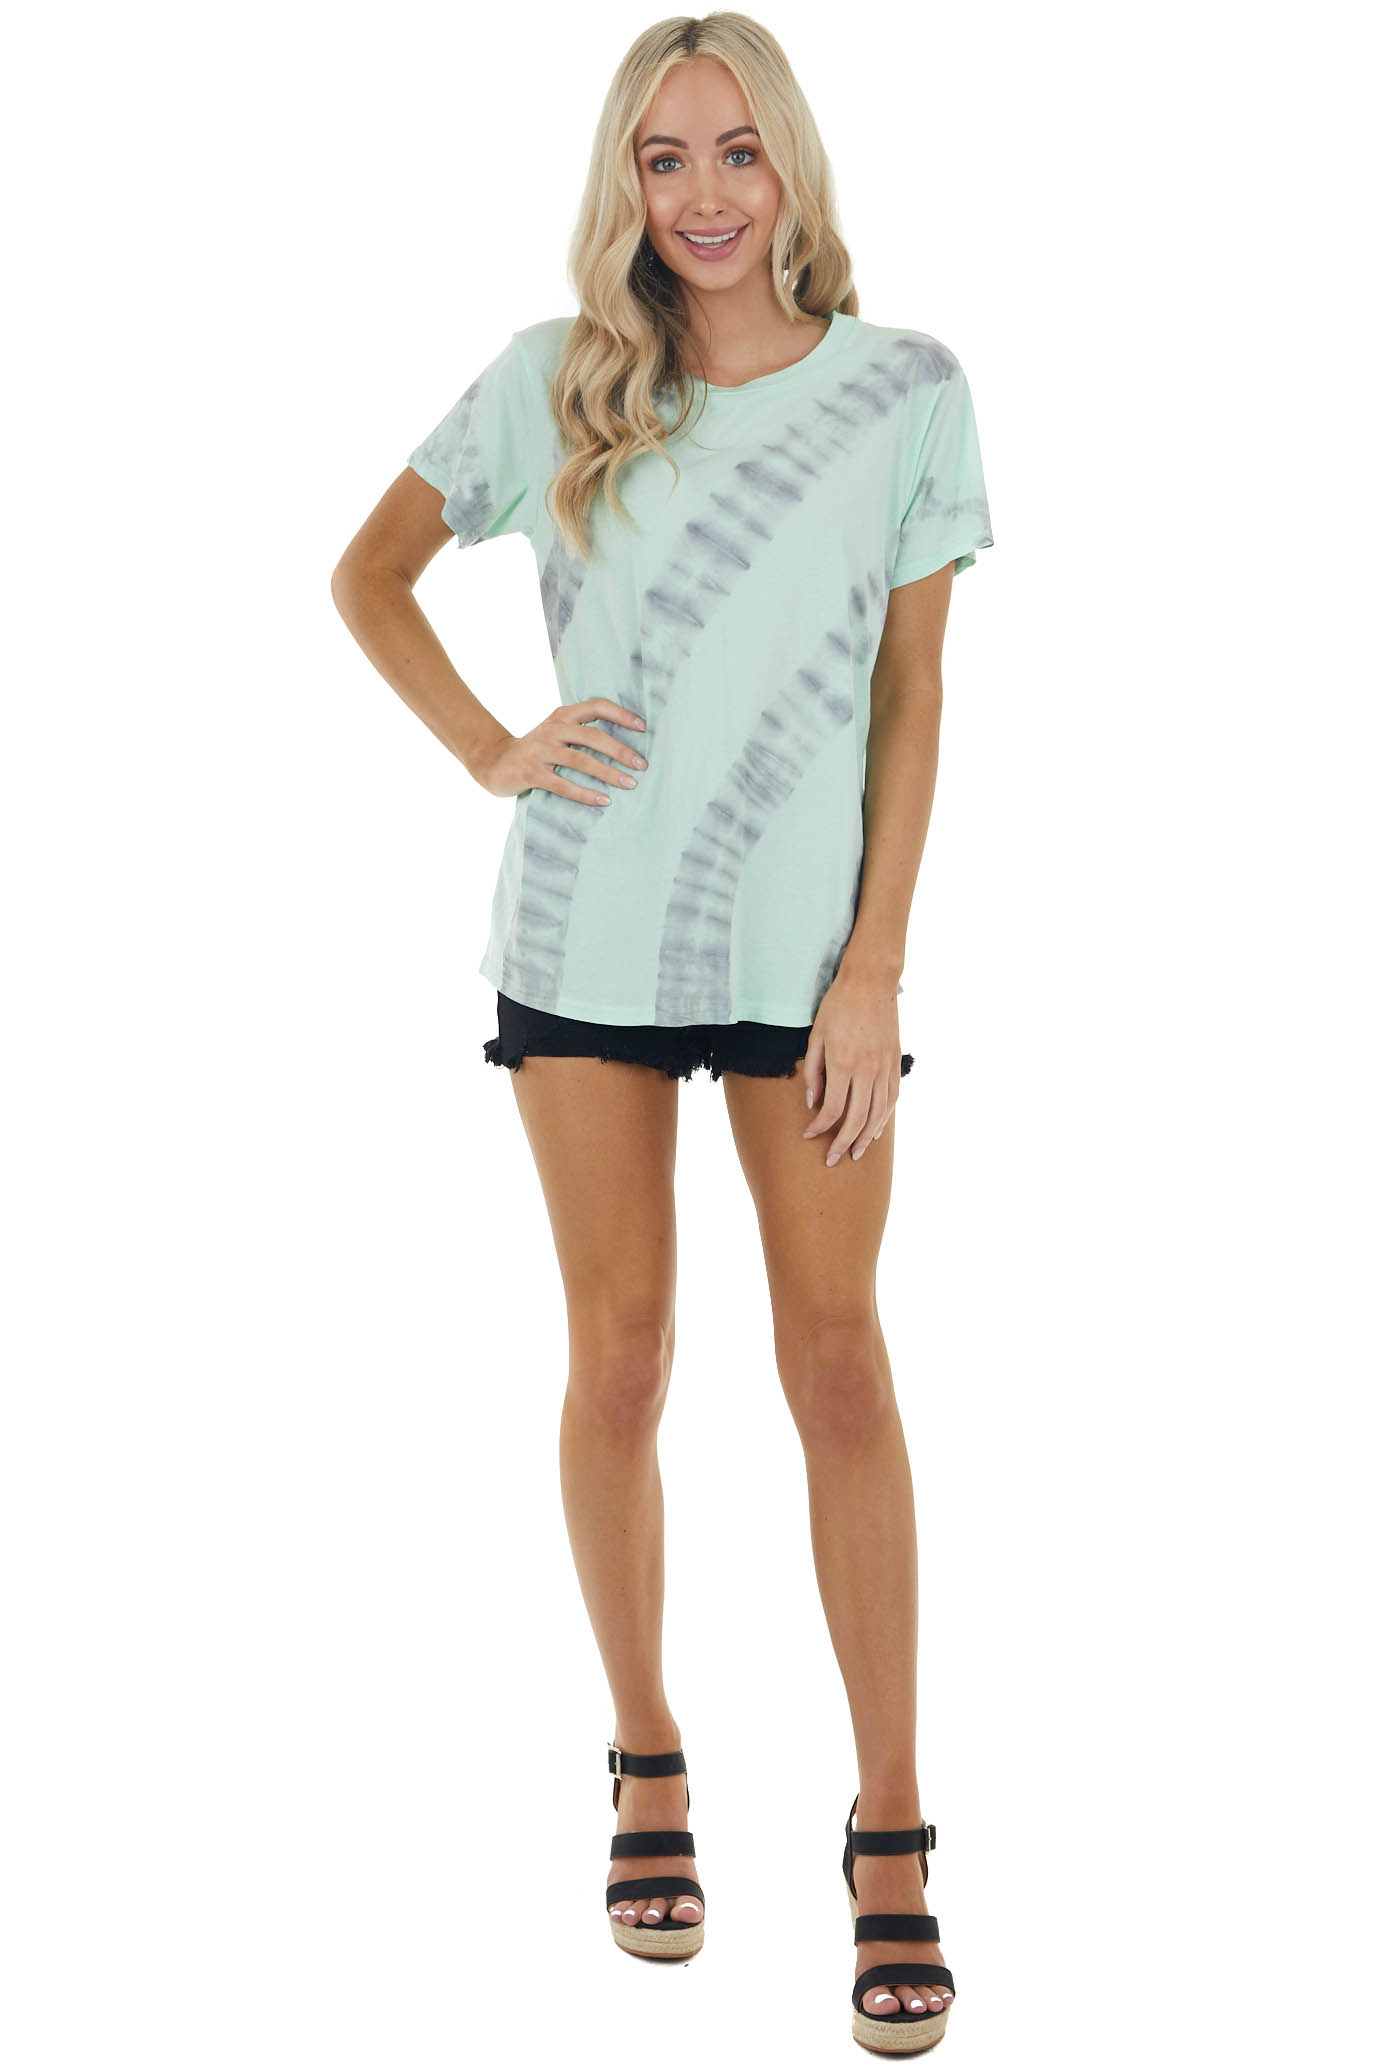 Mint Green and Stone Grey Tie Dye Short Sleeve Knit Top